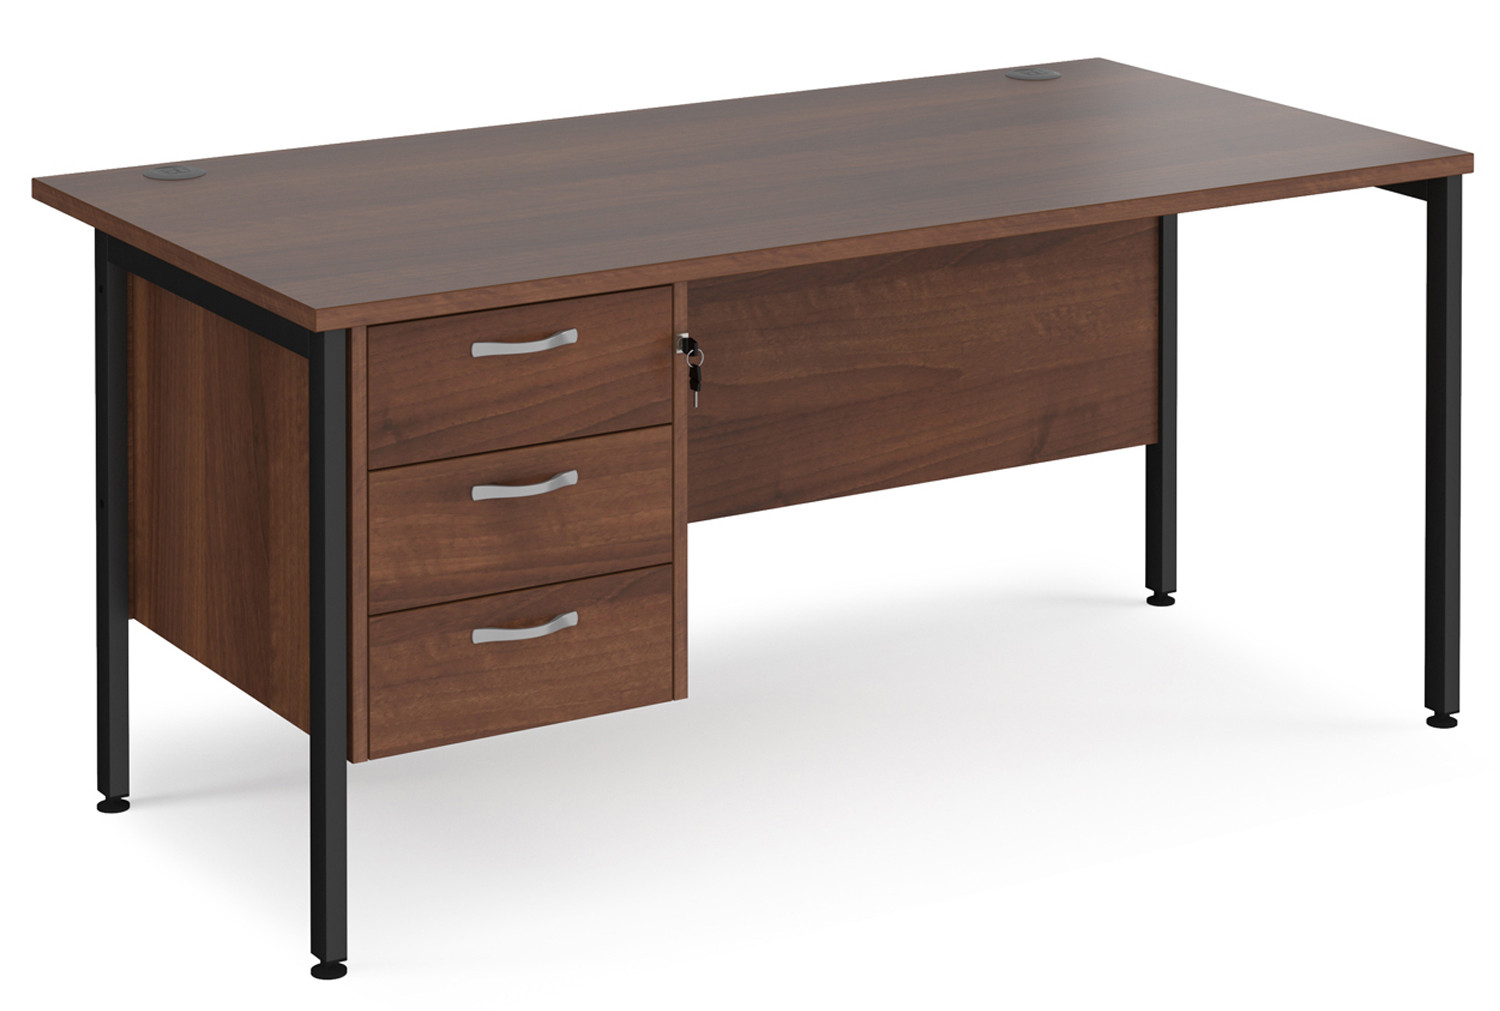 Value Line Deluxe H-Leg Rectangular Desk 3 Drawers (Black Legs)